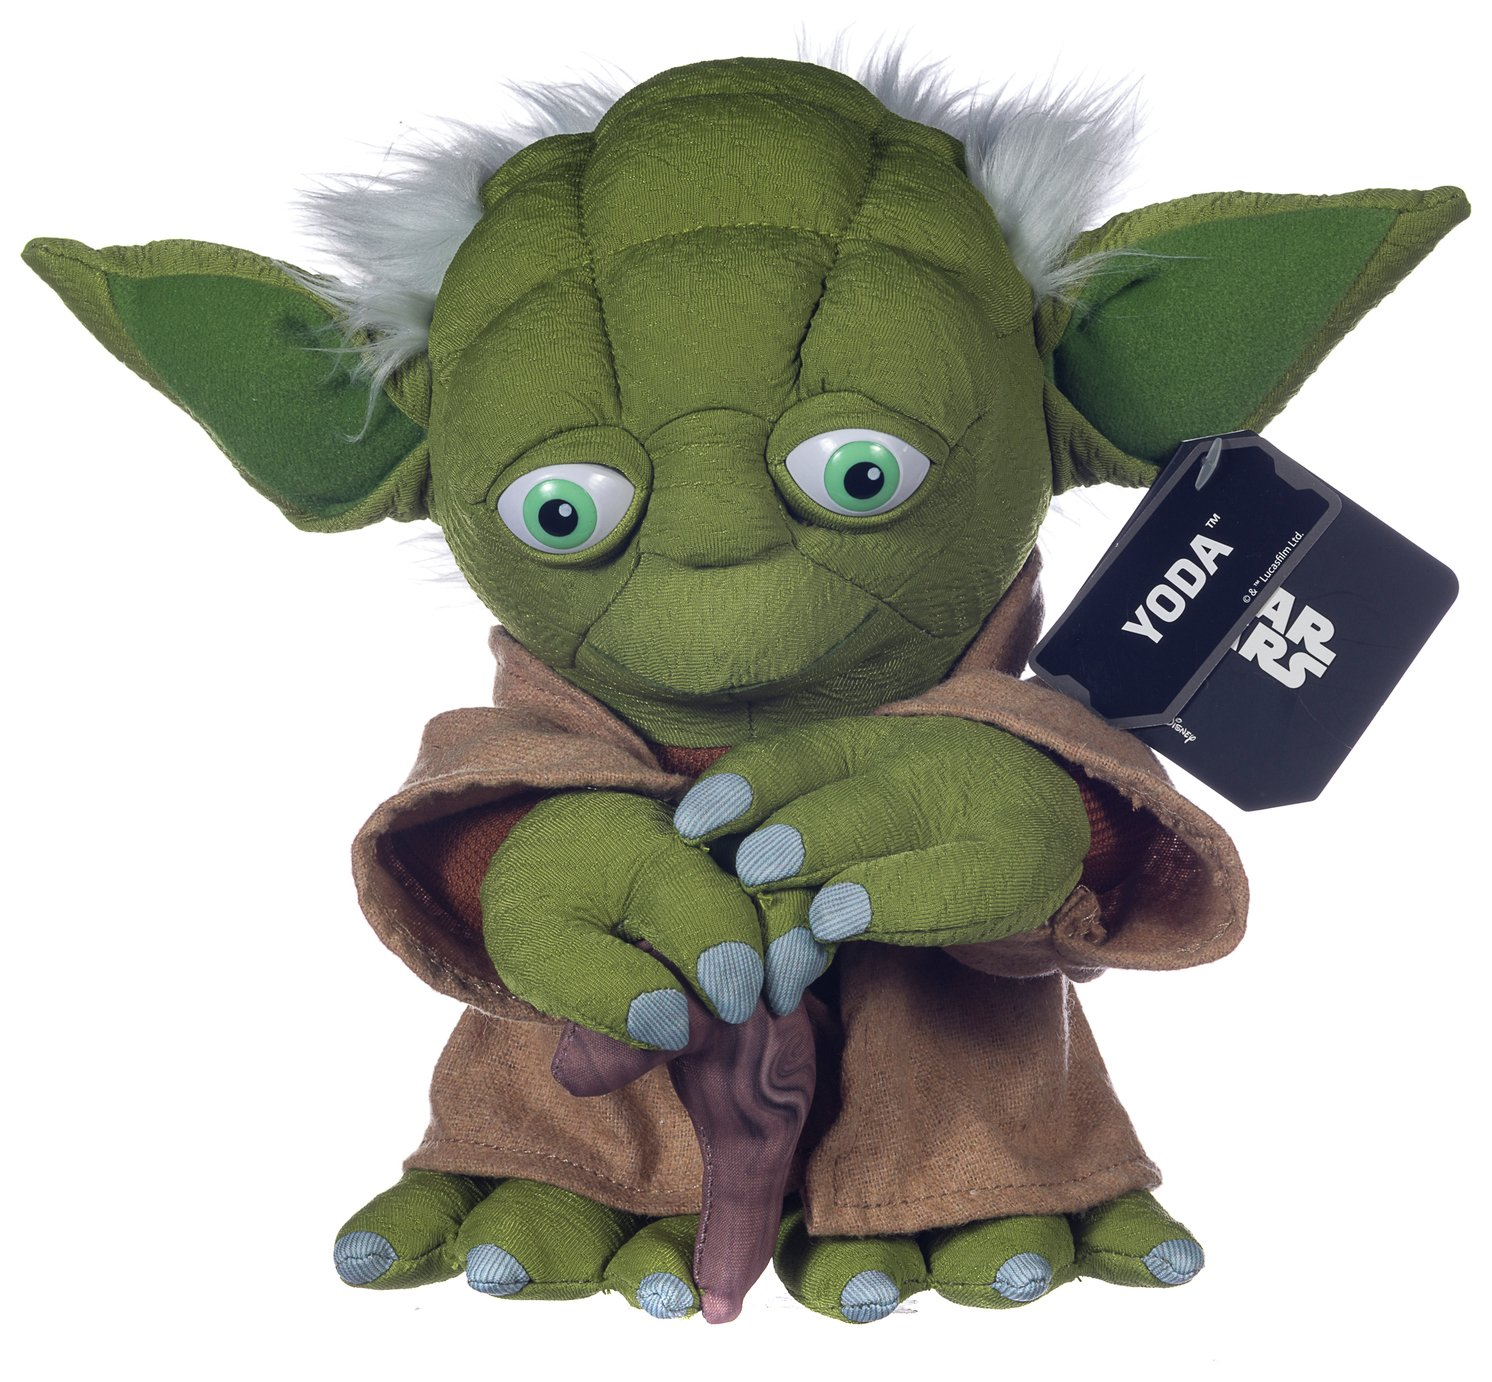 Image of Disney Star Wars Yoda Soft Toy